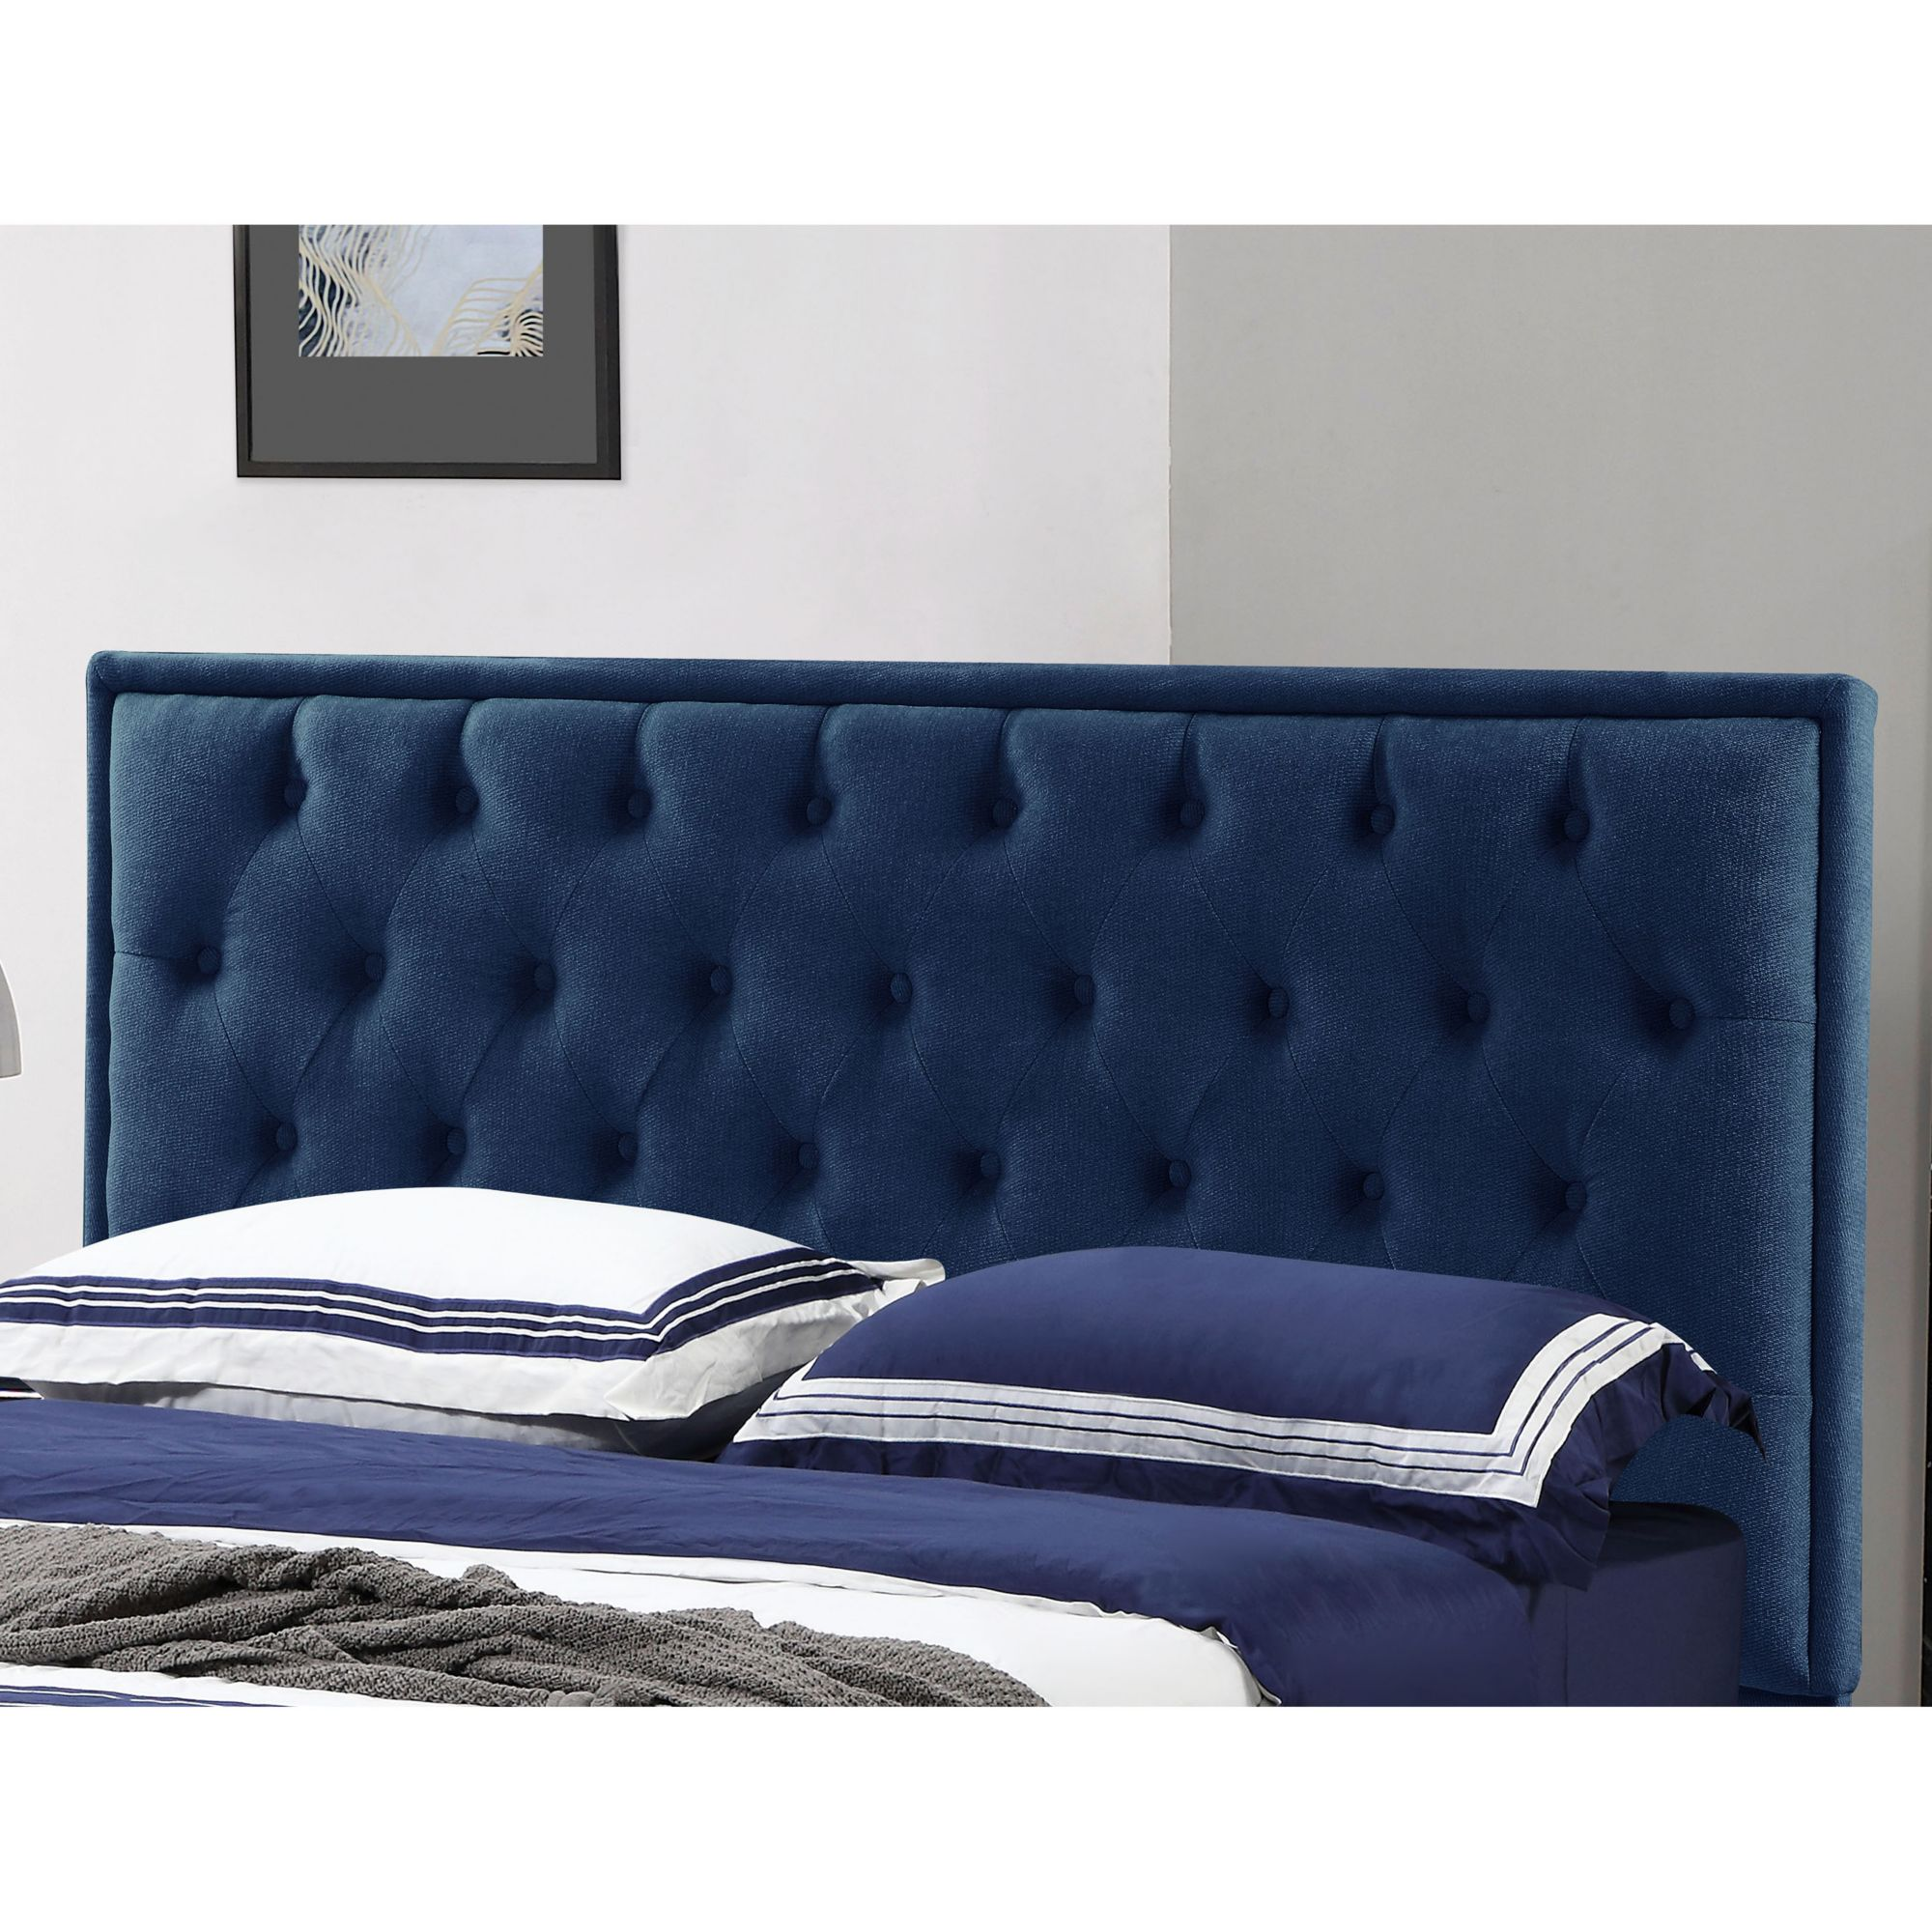 Must Have Abbyson Living Zenovia Tufted King California King Size Headboard Na From Abbyson Living Accuweather Shop